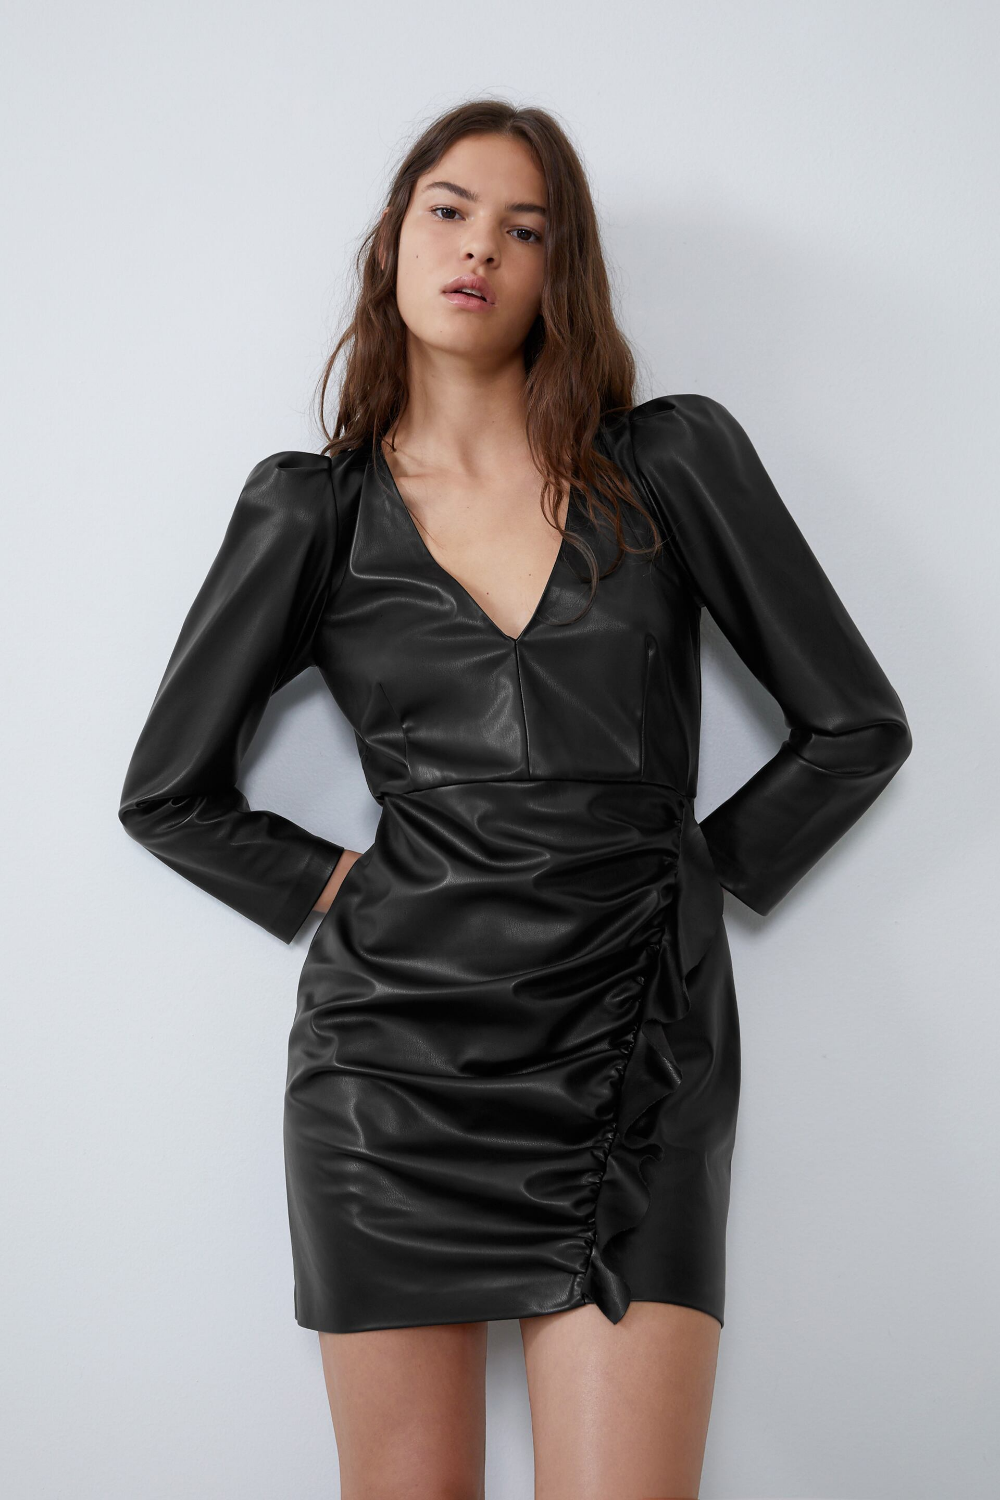 All Leather Dresses